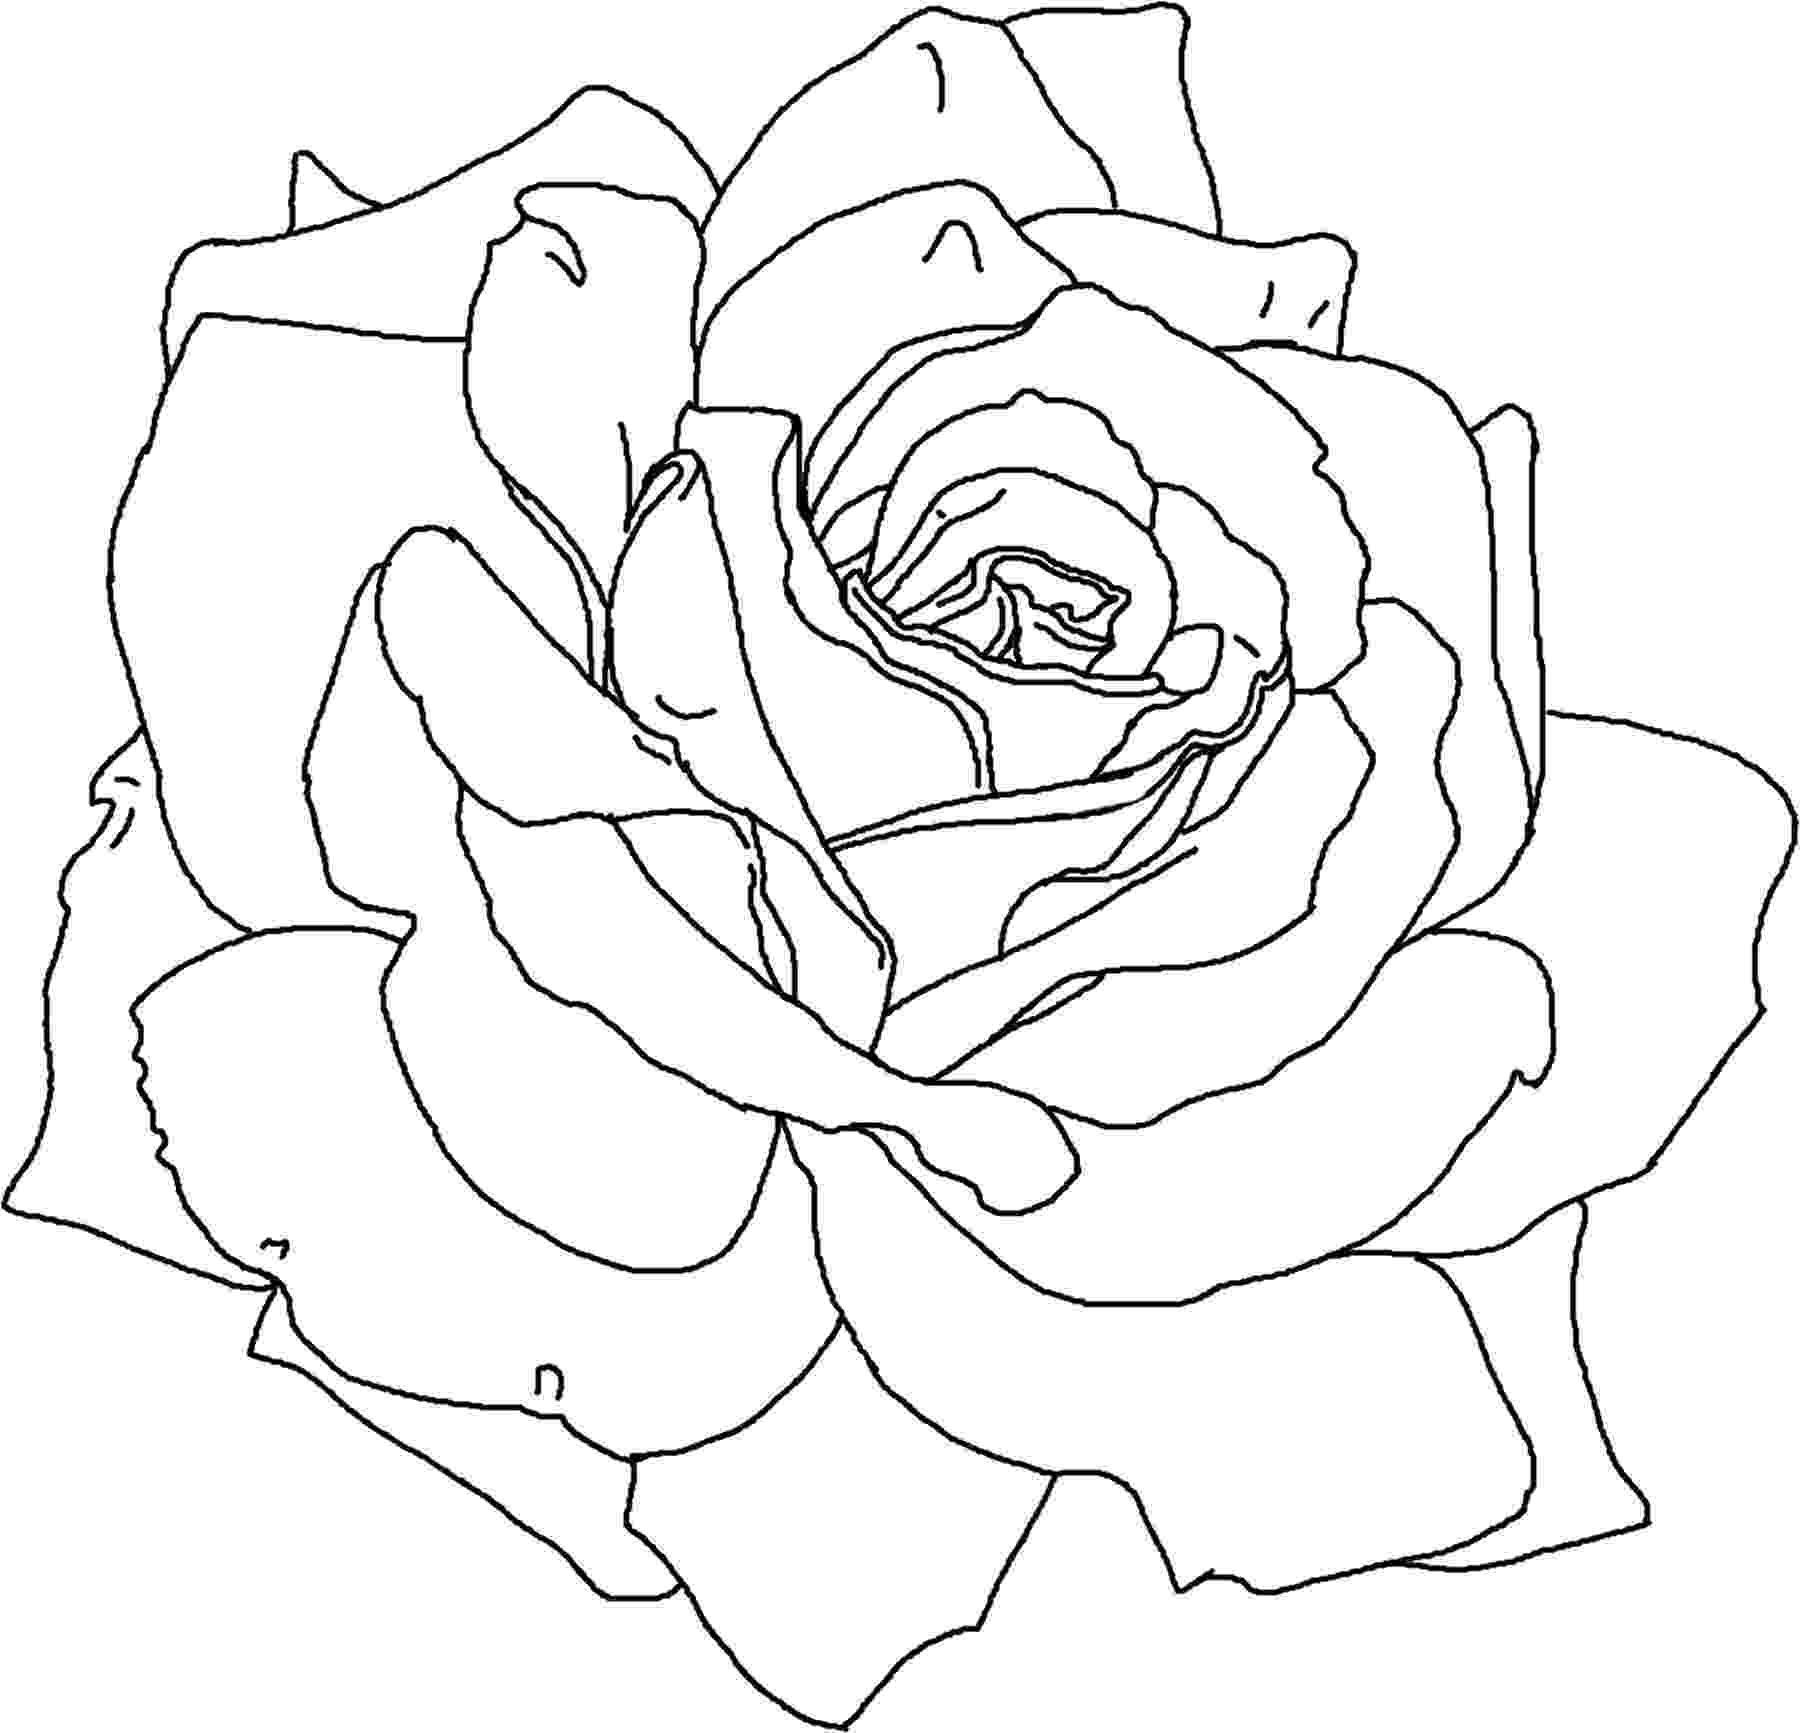 flowers printable coloring pages free printable flower coloring pages for kids best flowers pages printable coloring 1 1